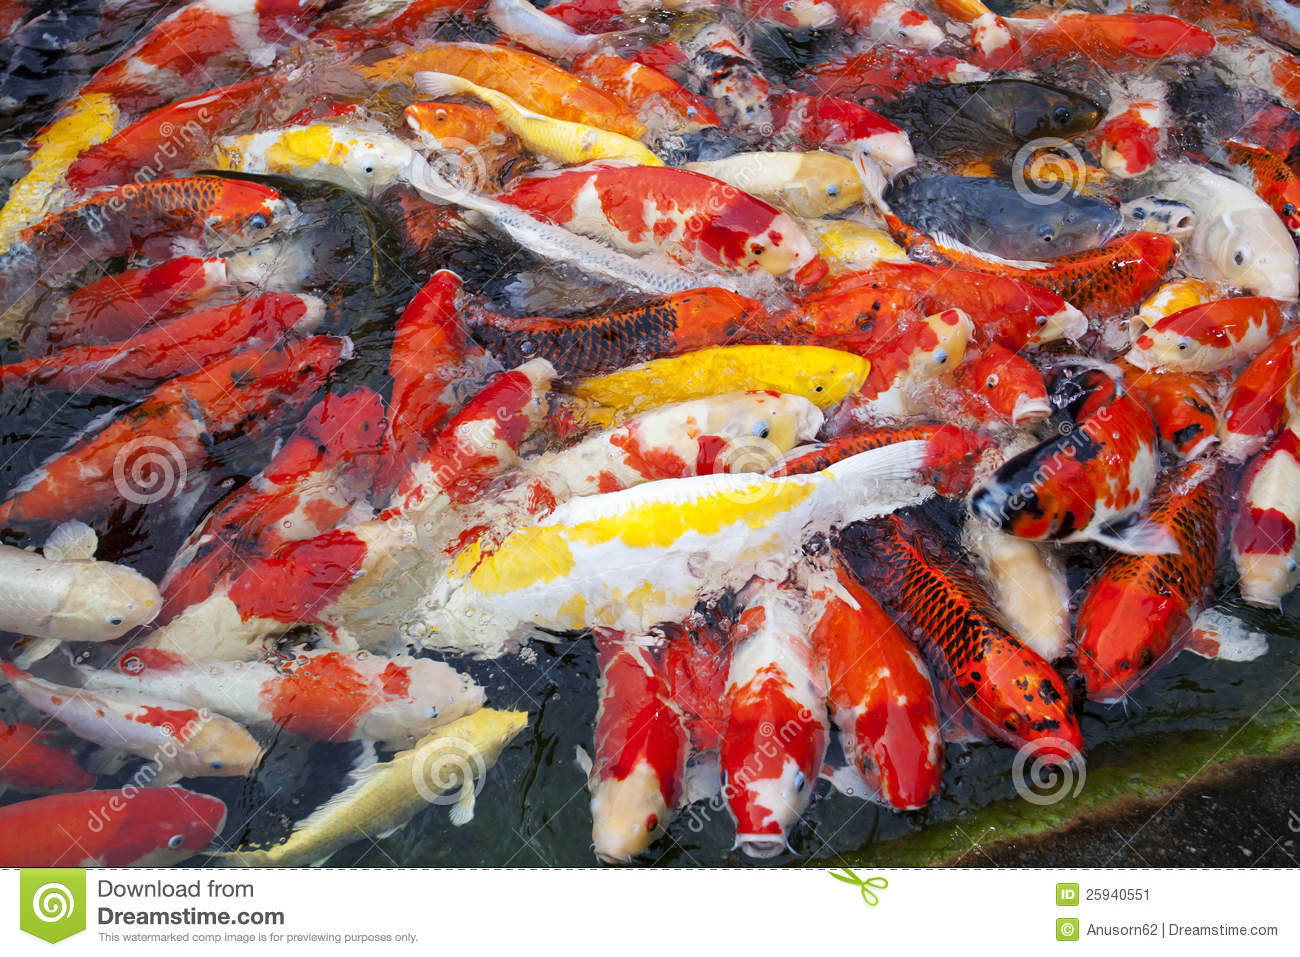 Japanese koi fish stock image image of nature feed for Japanese koi carp fish